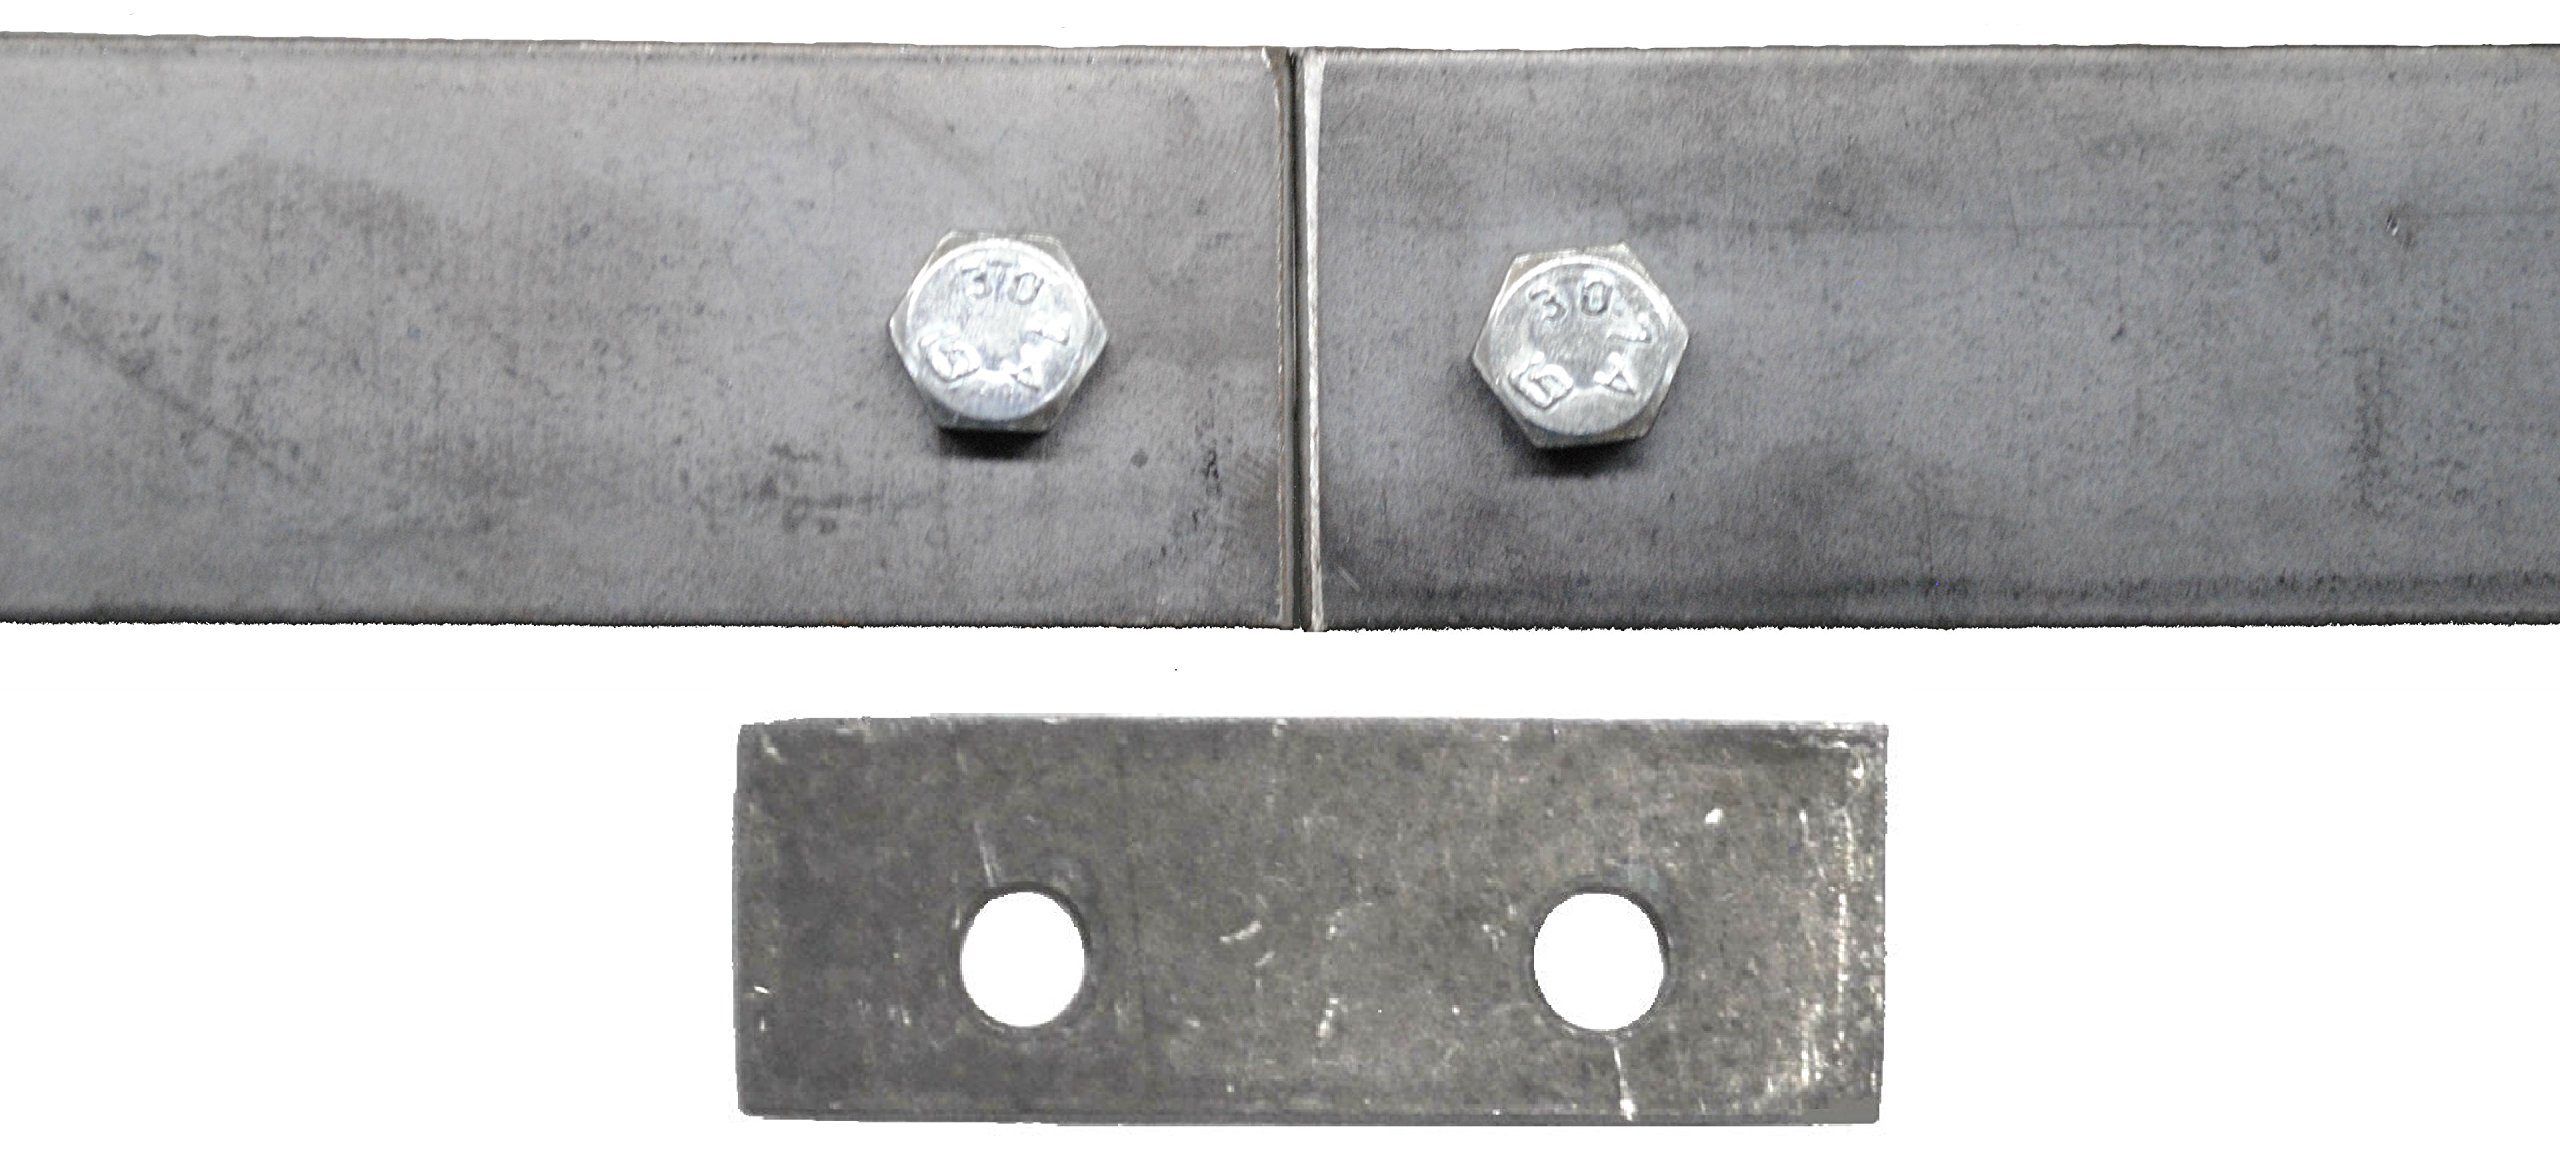 Double Sliding Barn Door Hardware Kit Top Mount Design with 8 Ft. Track Included - Made in USA by Mapp Caster (Image #6)